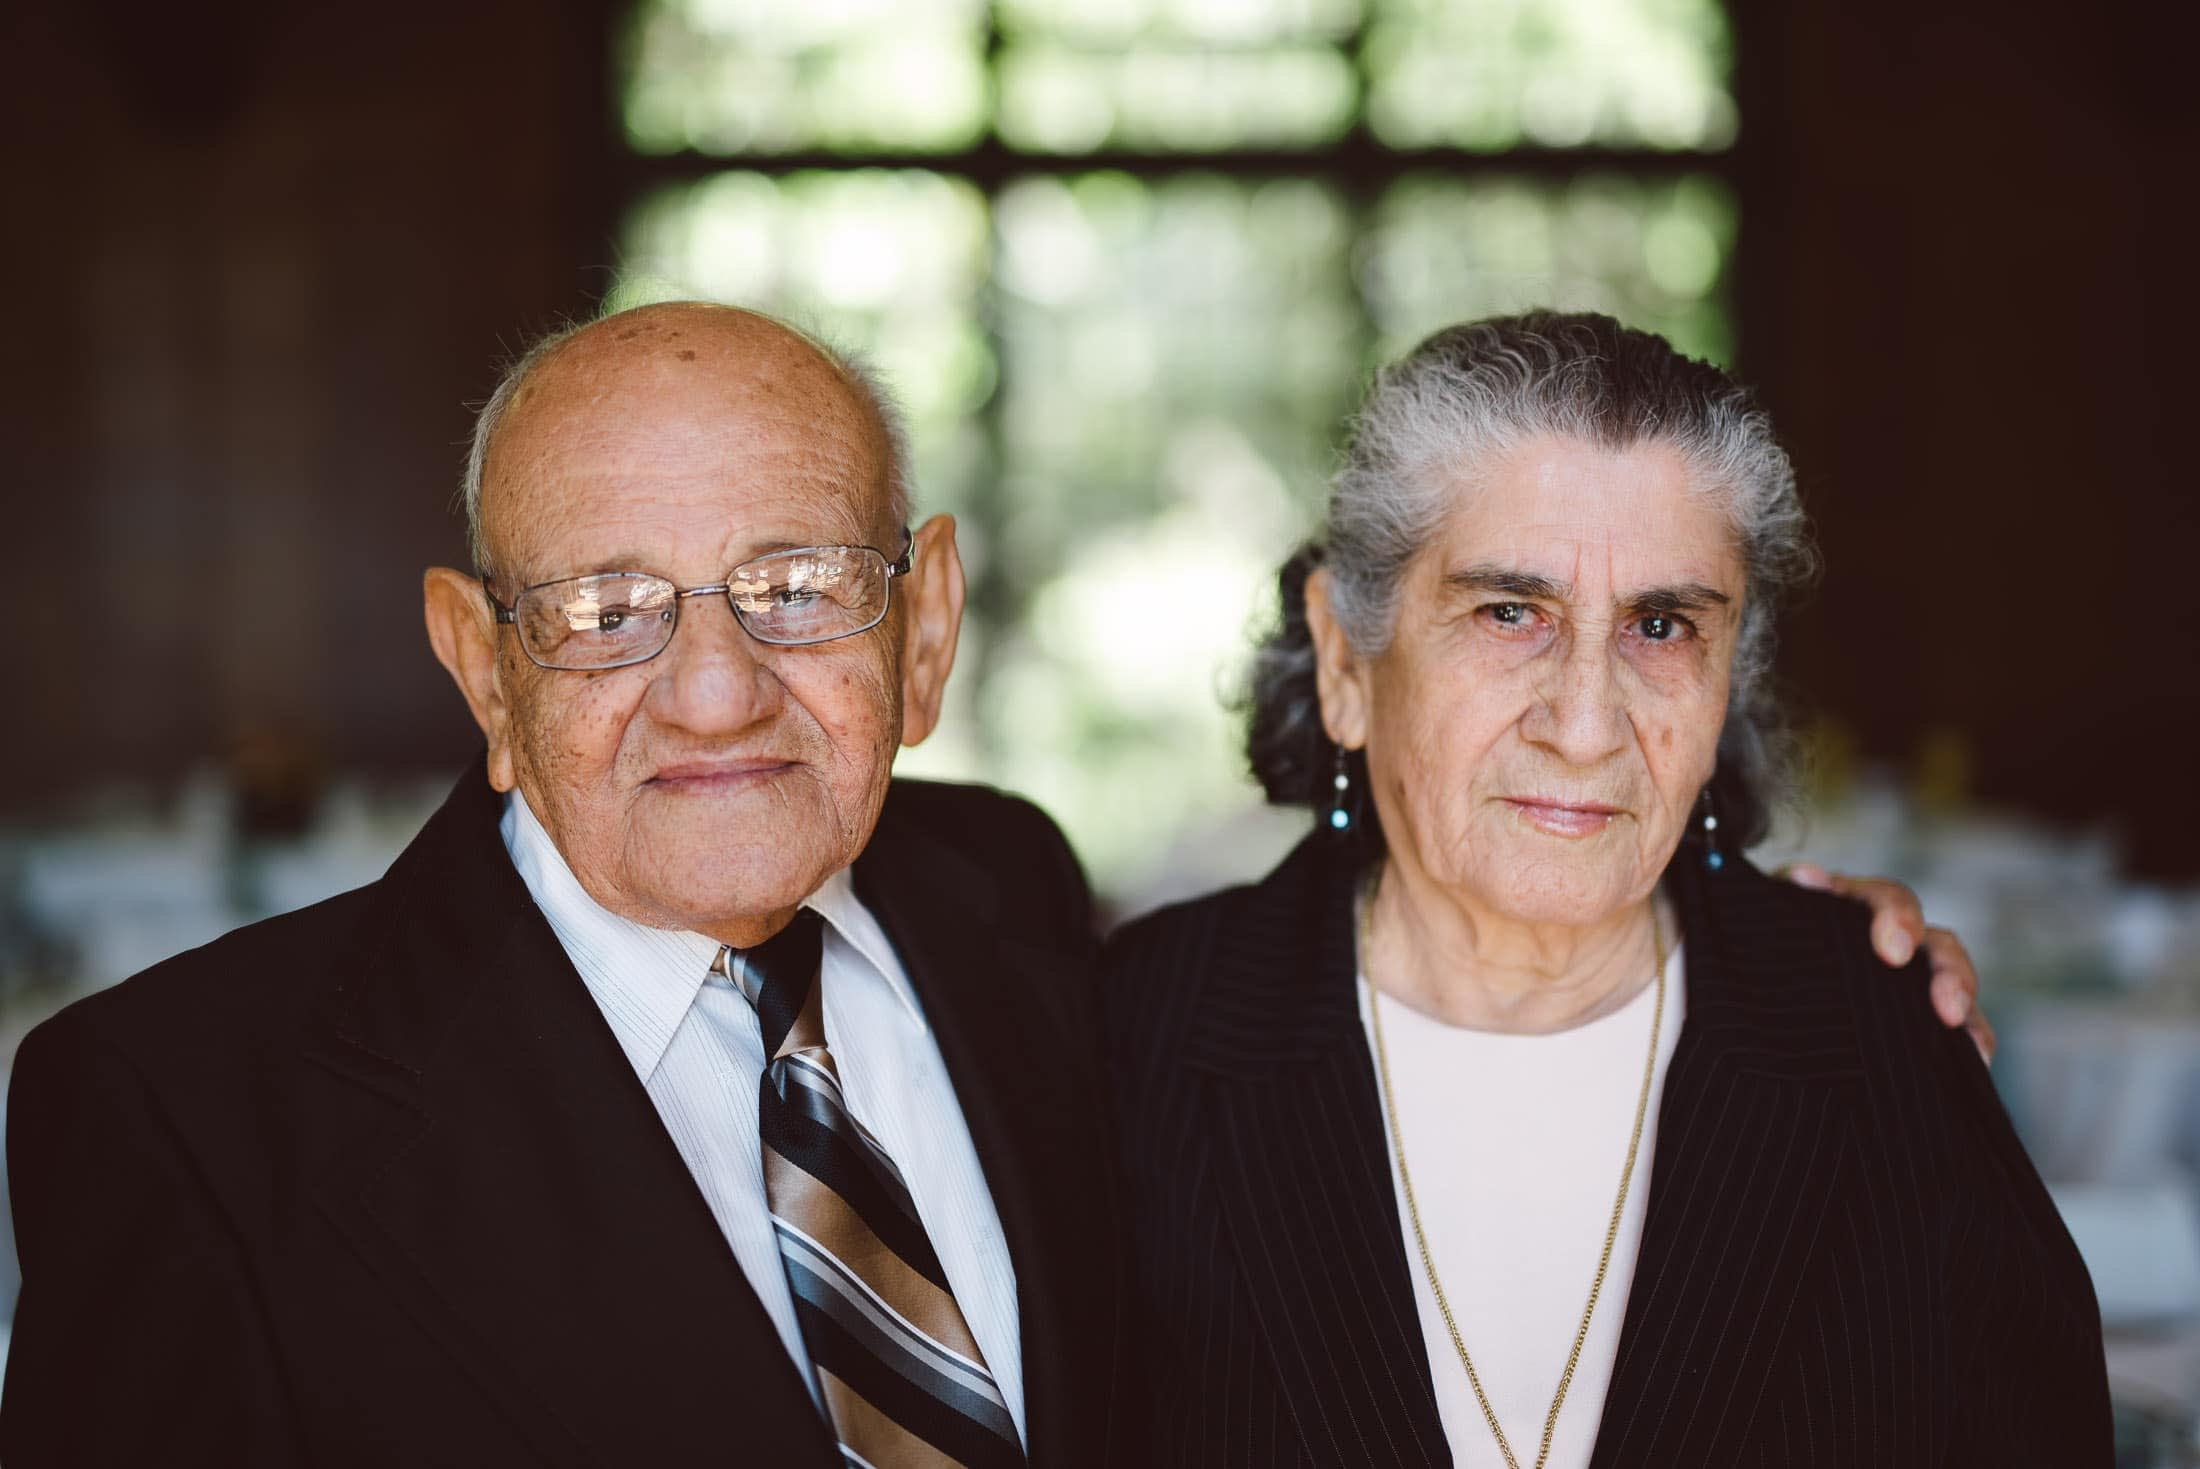 Grandparents portrait at brazil room wedding